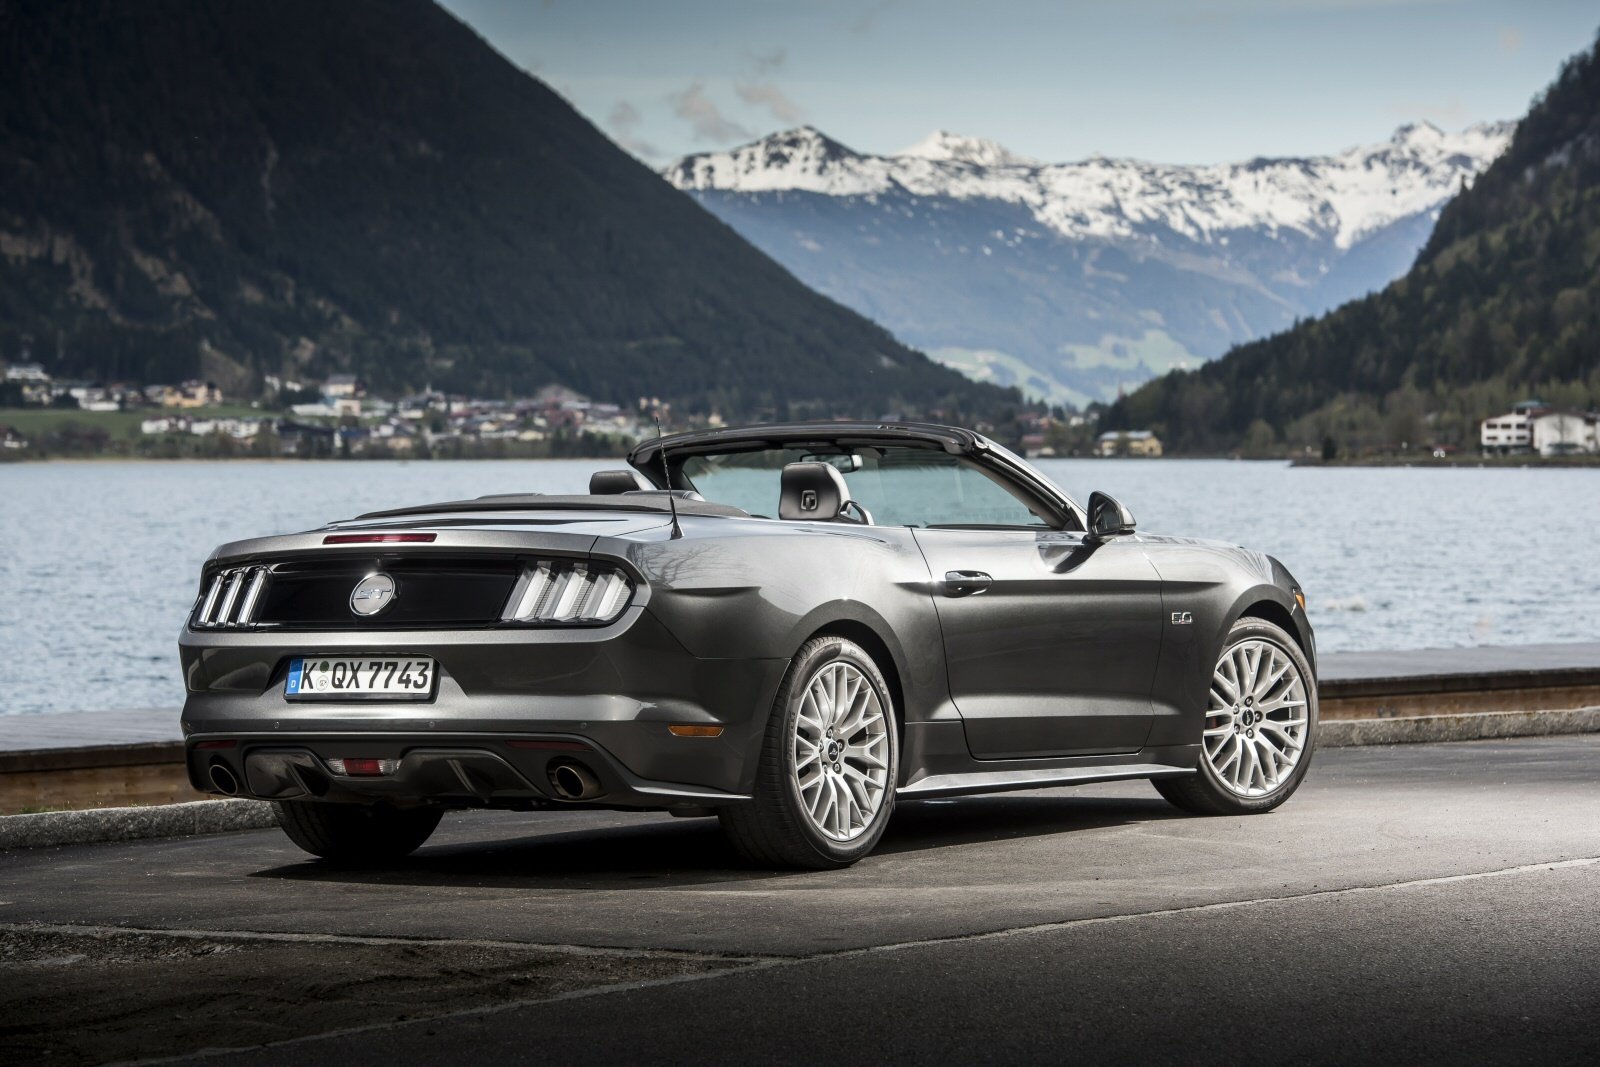 FordMustangConvertible0515(5)